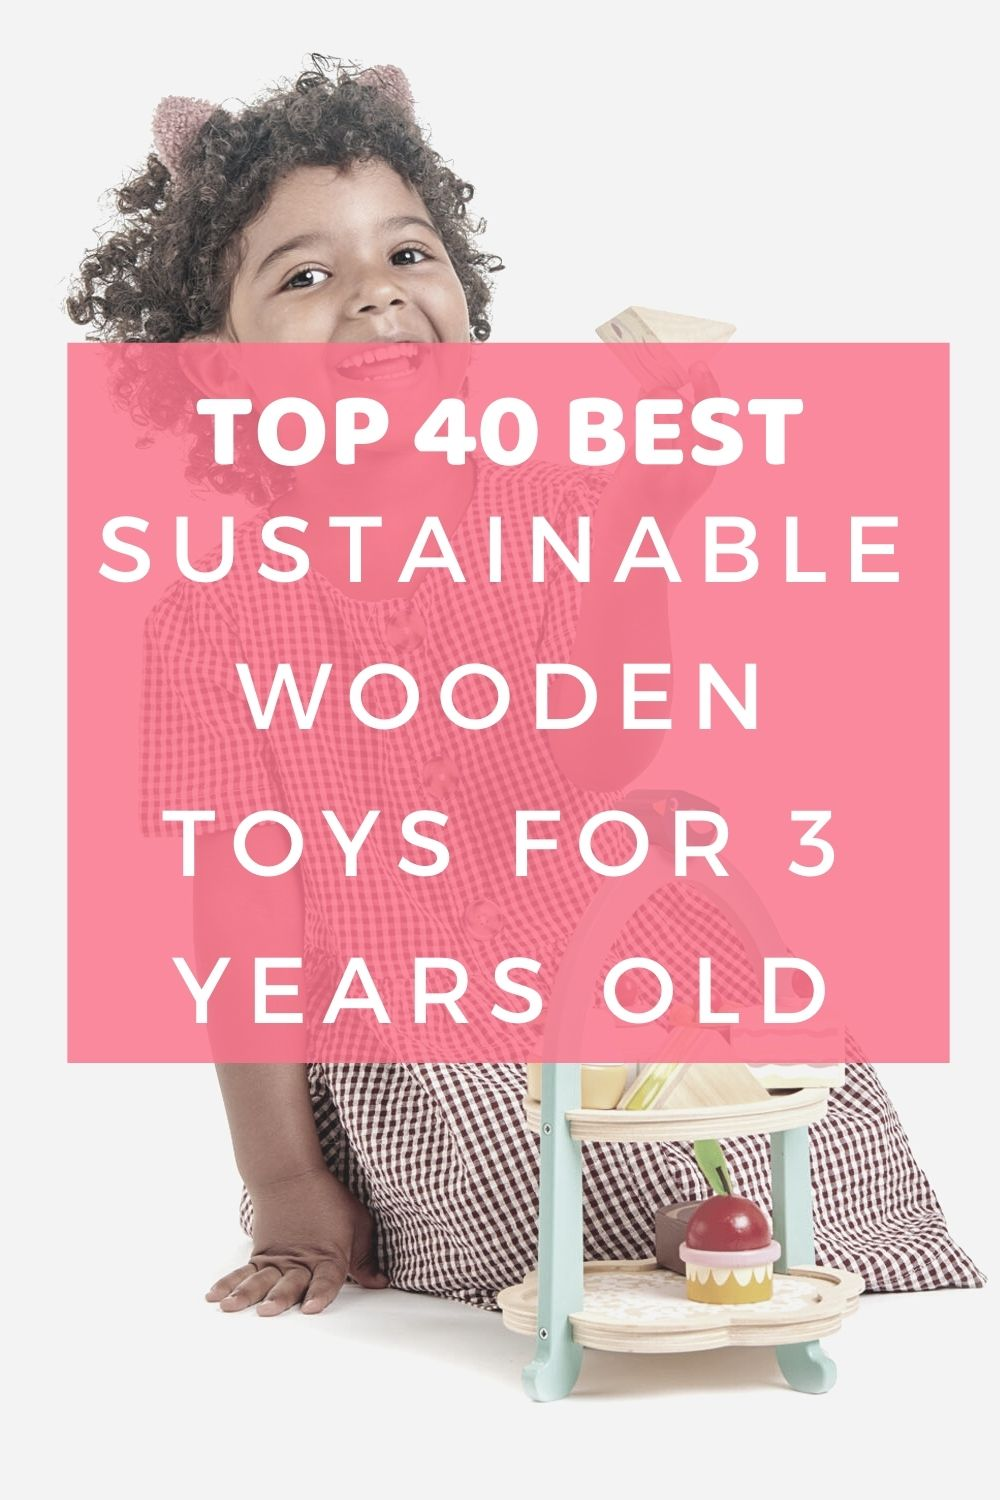 Top 40 best Wooden Toys for 3 years old